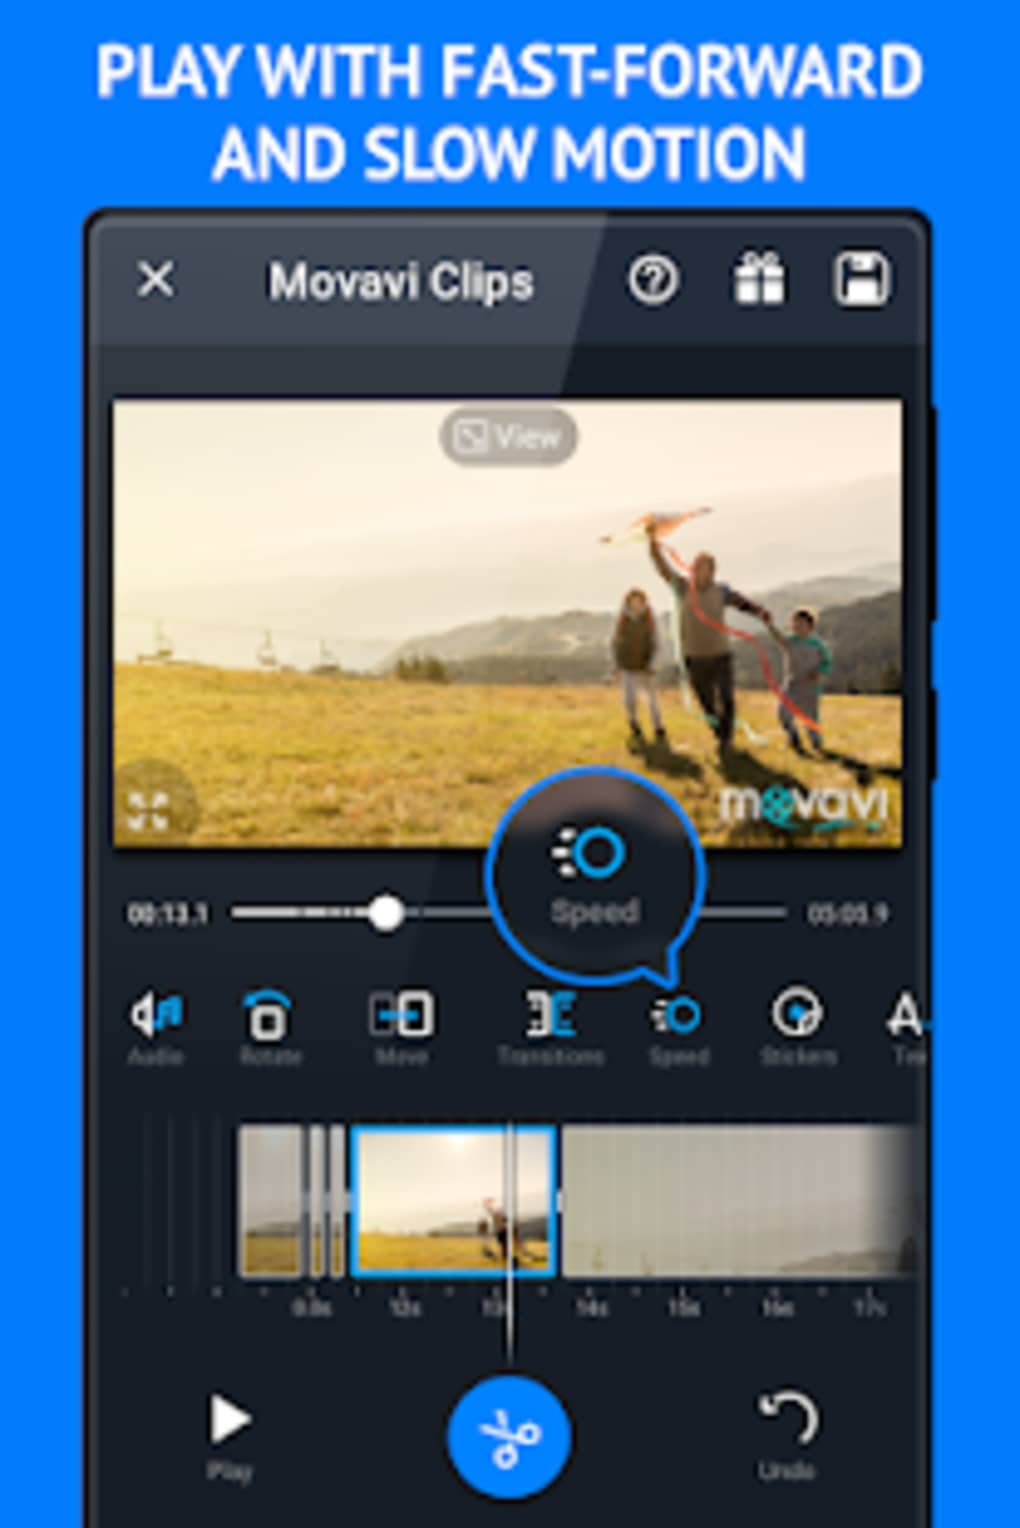 Movavi Clips Video Editor for Android - Download